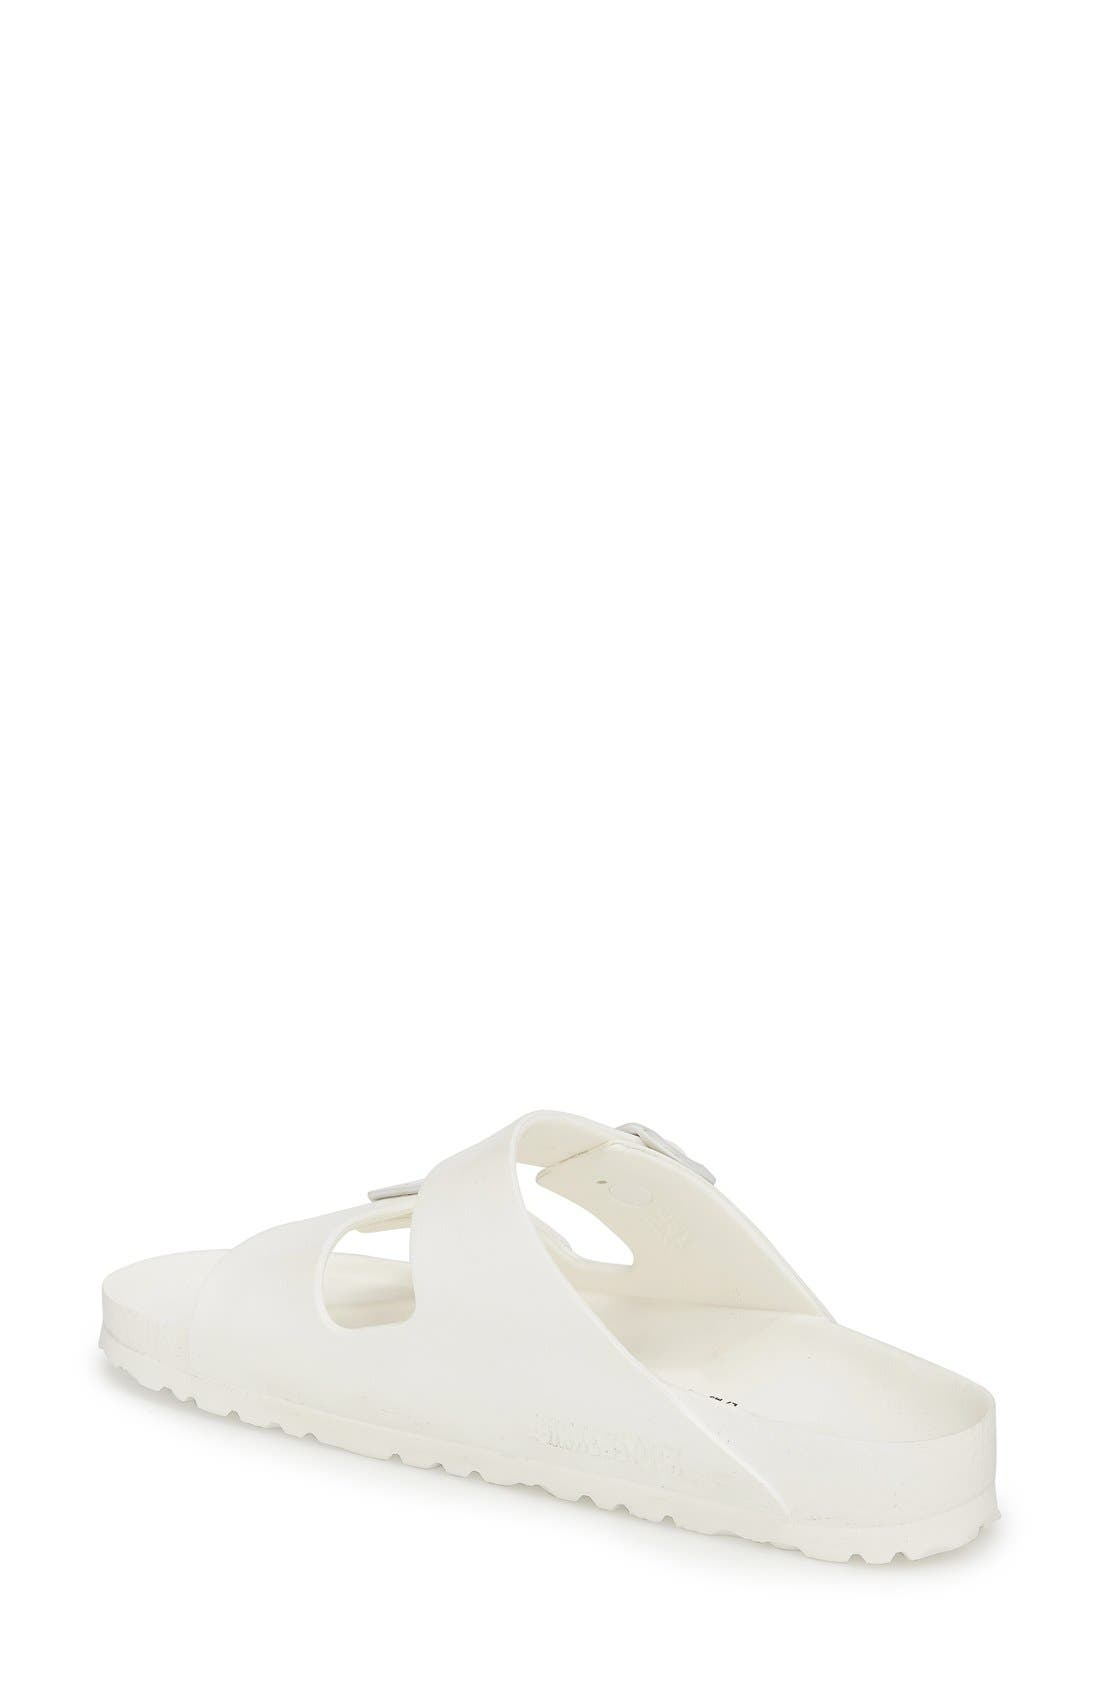 Essentials - Arizona Slide Sandal,                             Alternate thumbnail 7, color,                             WHITE EVA